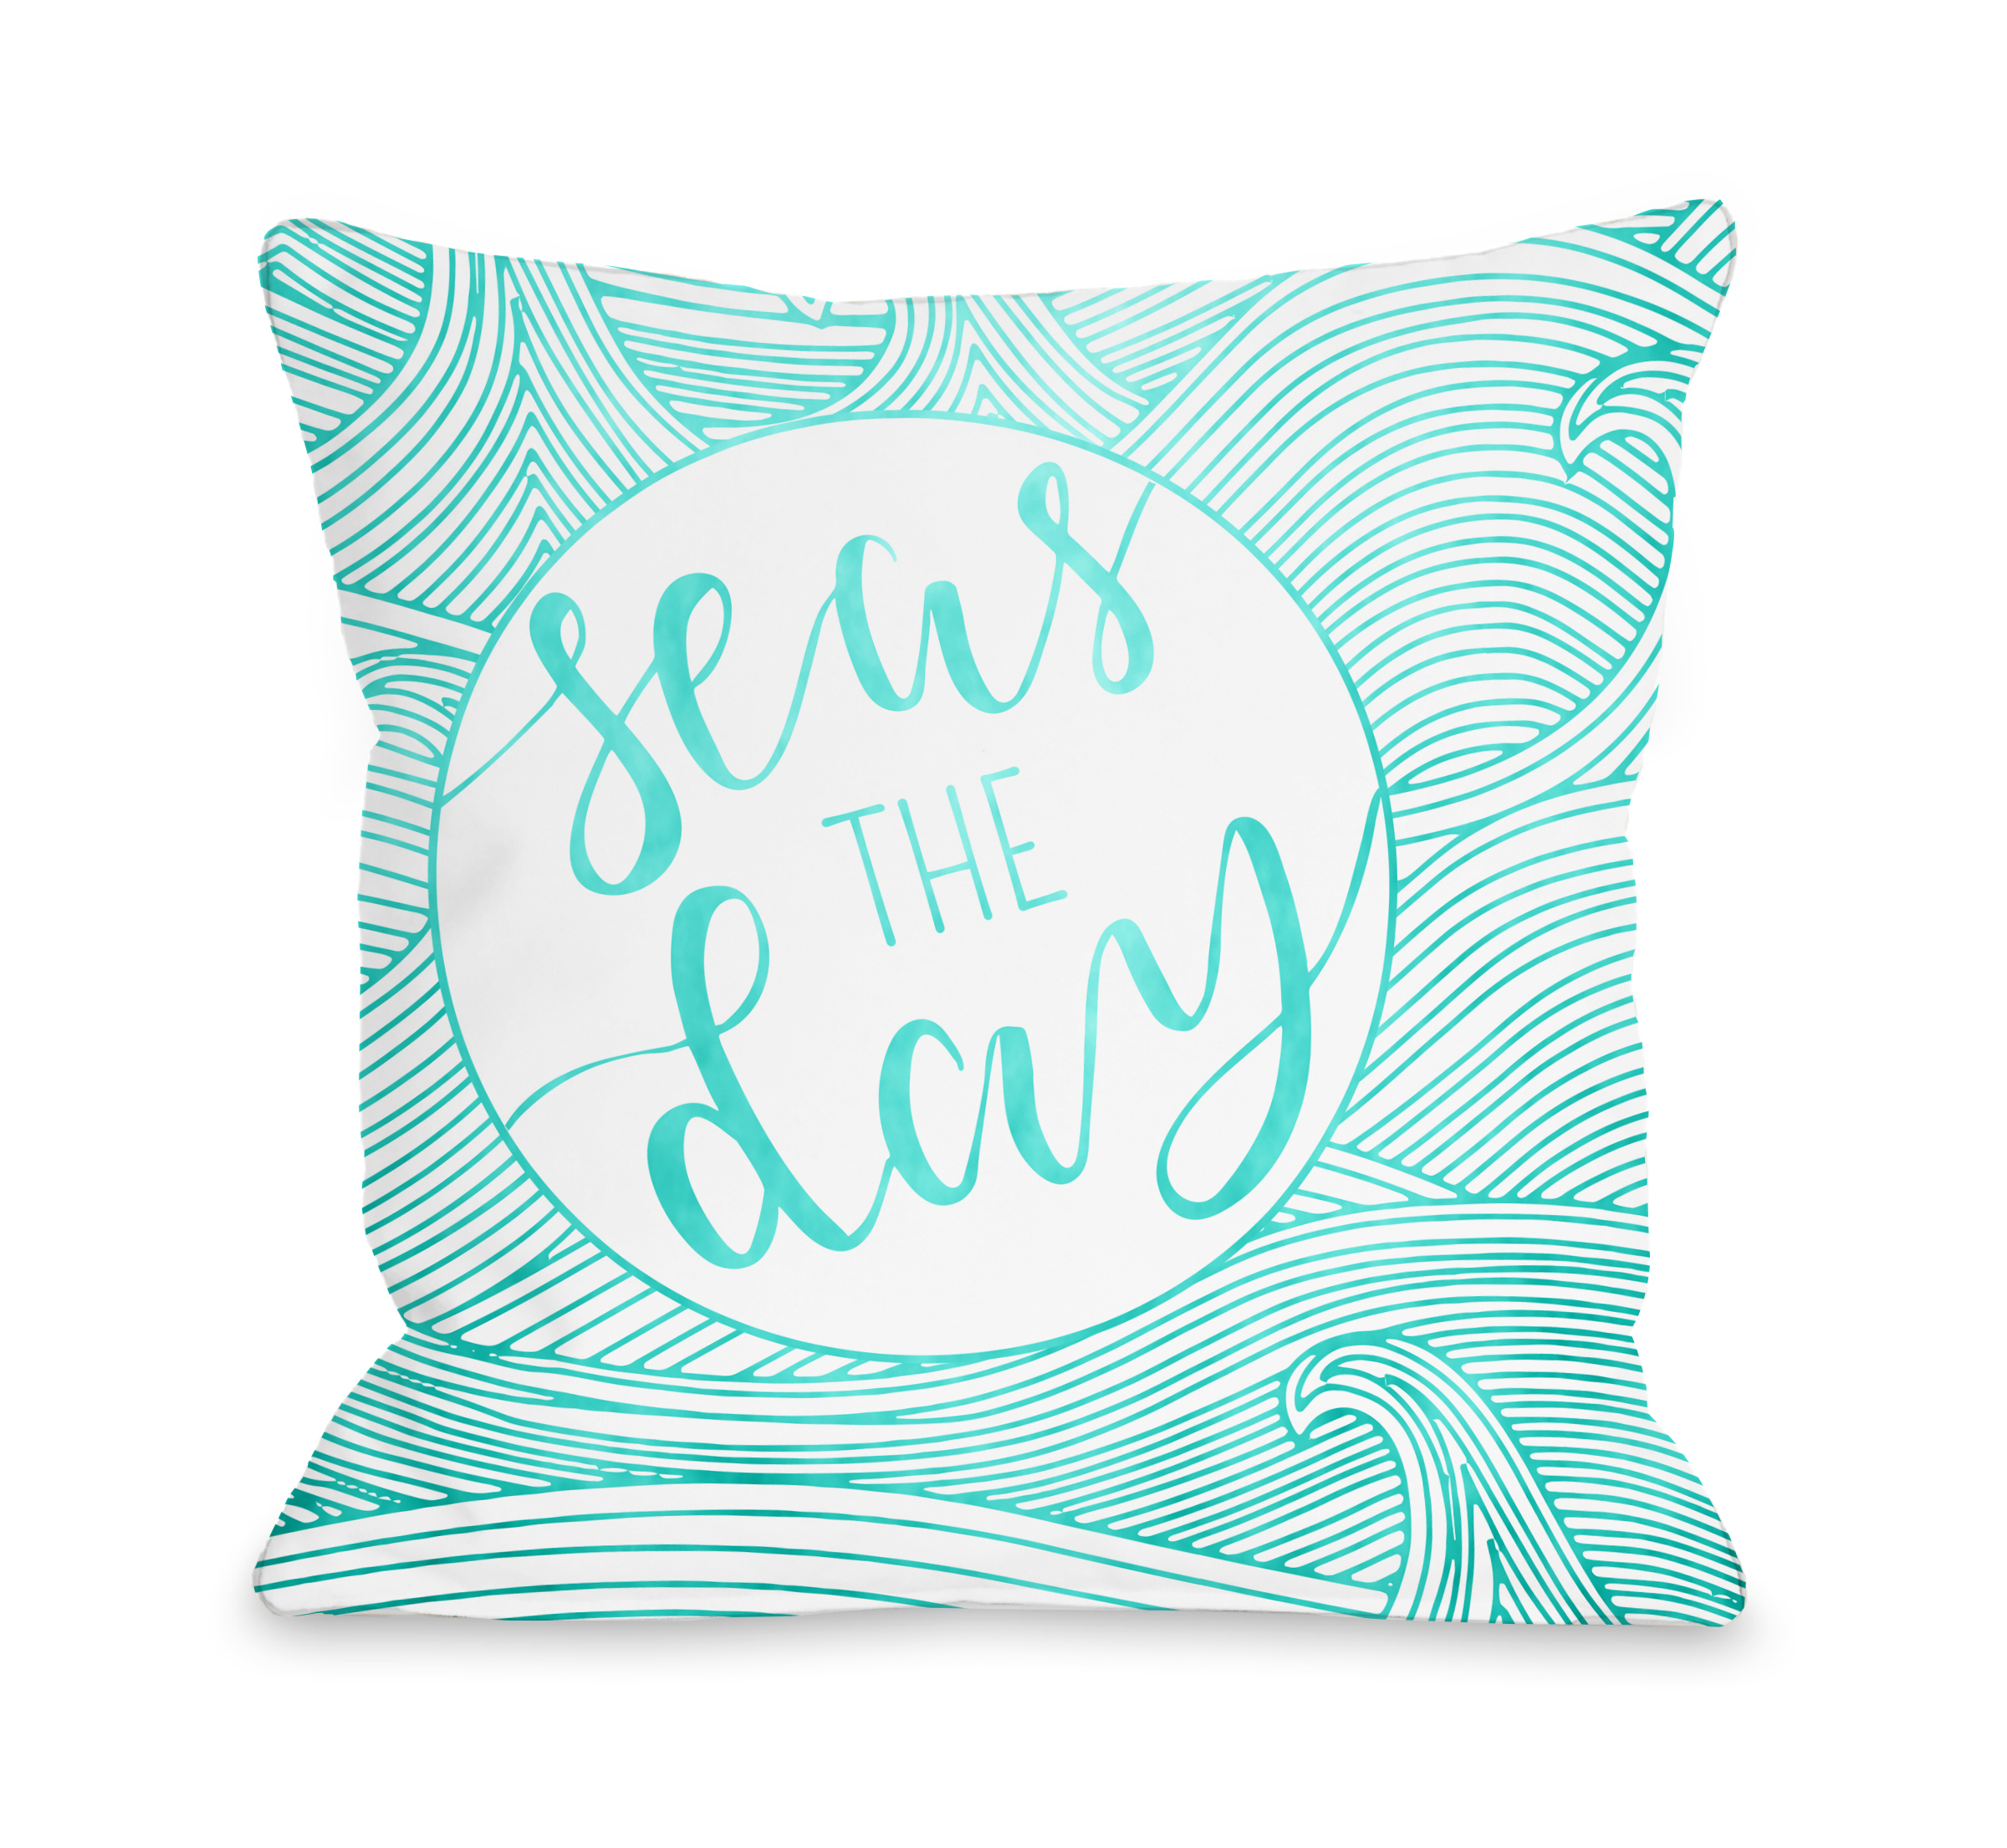 Seas The Day - Teal 18x18 Pillow by OBC